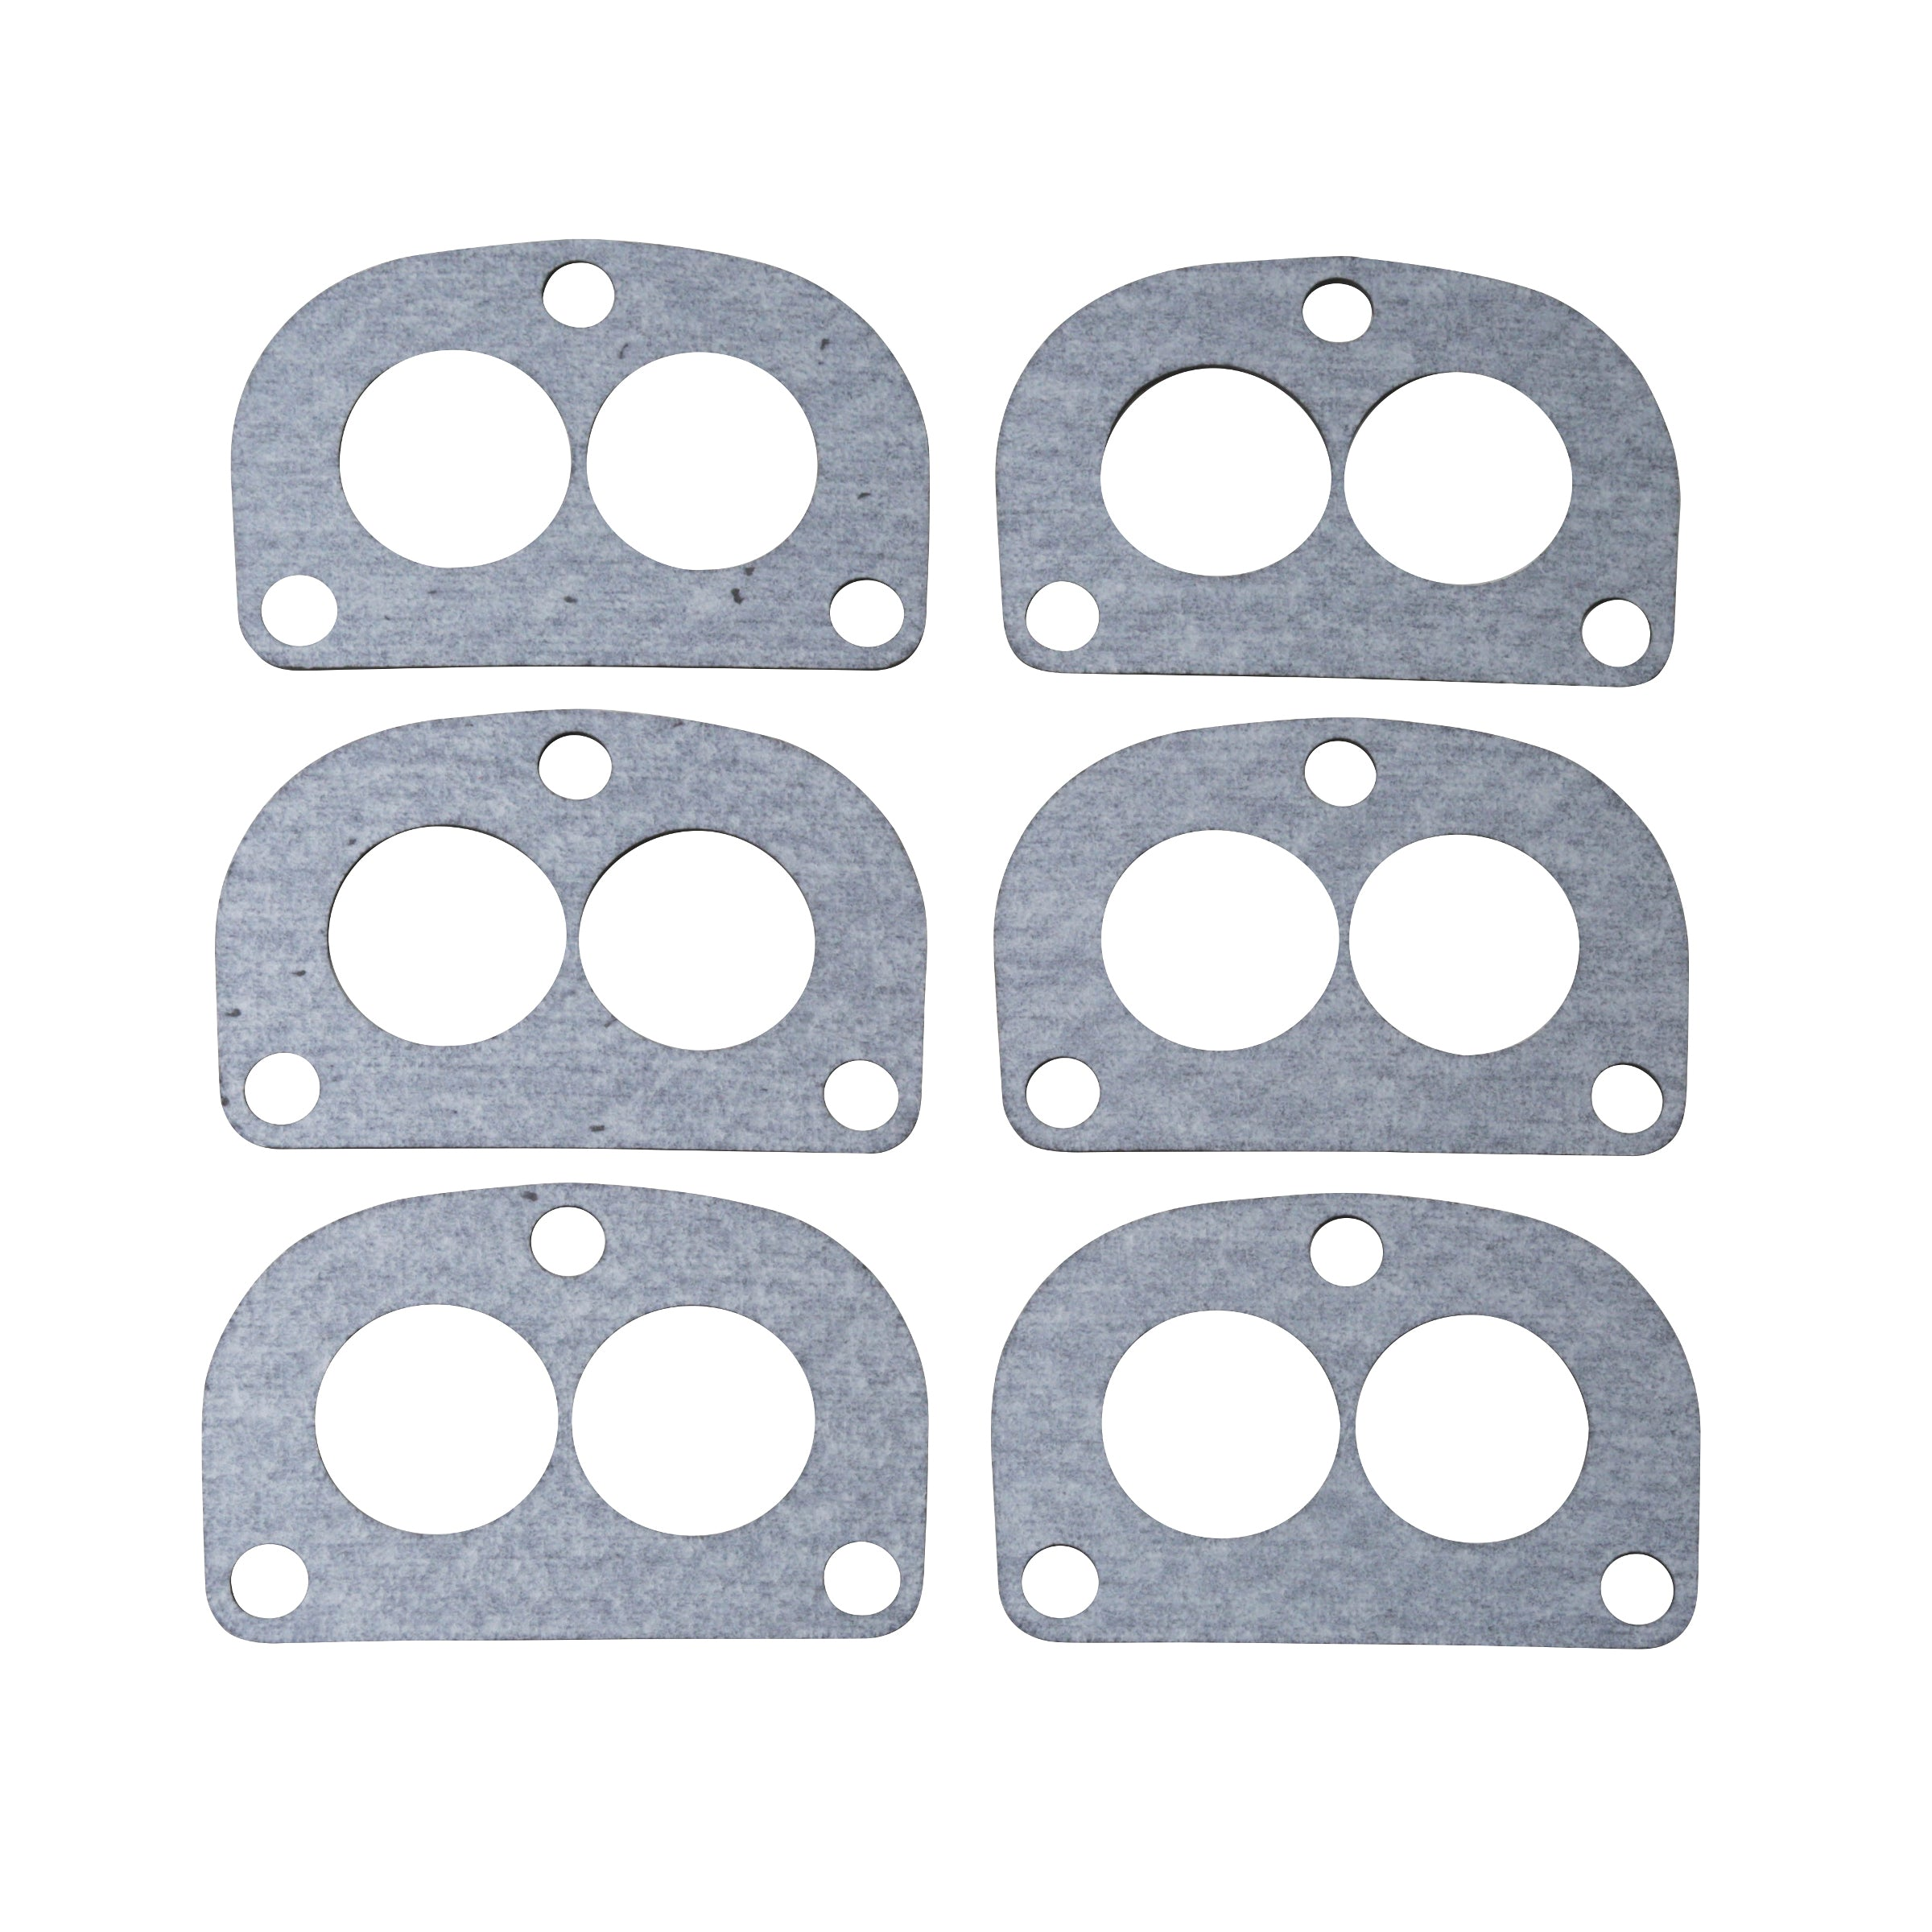 Stromberg Carburetor to Manifold Gasket Set